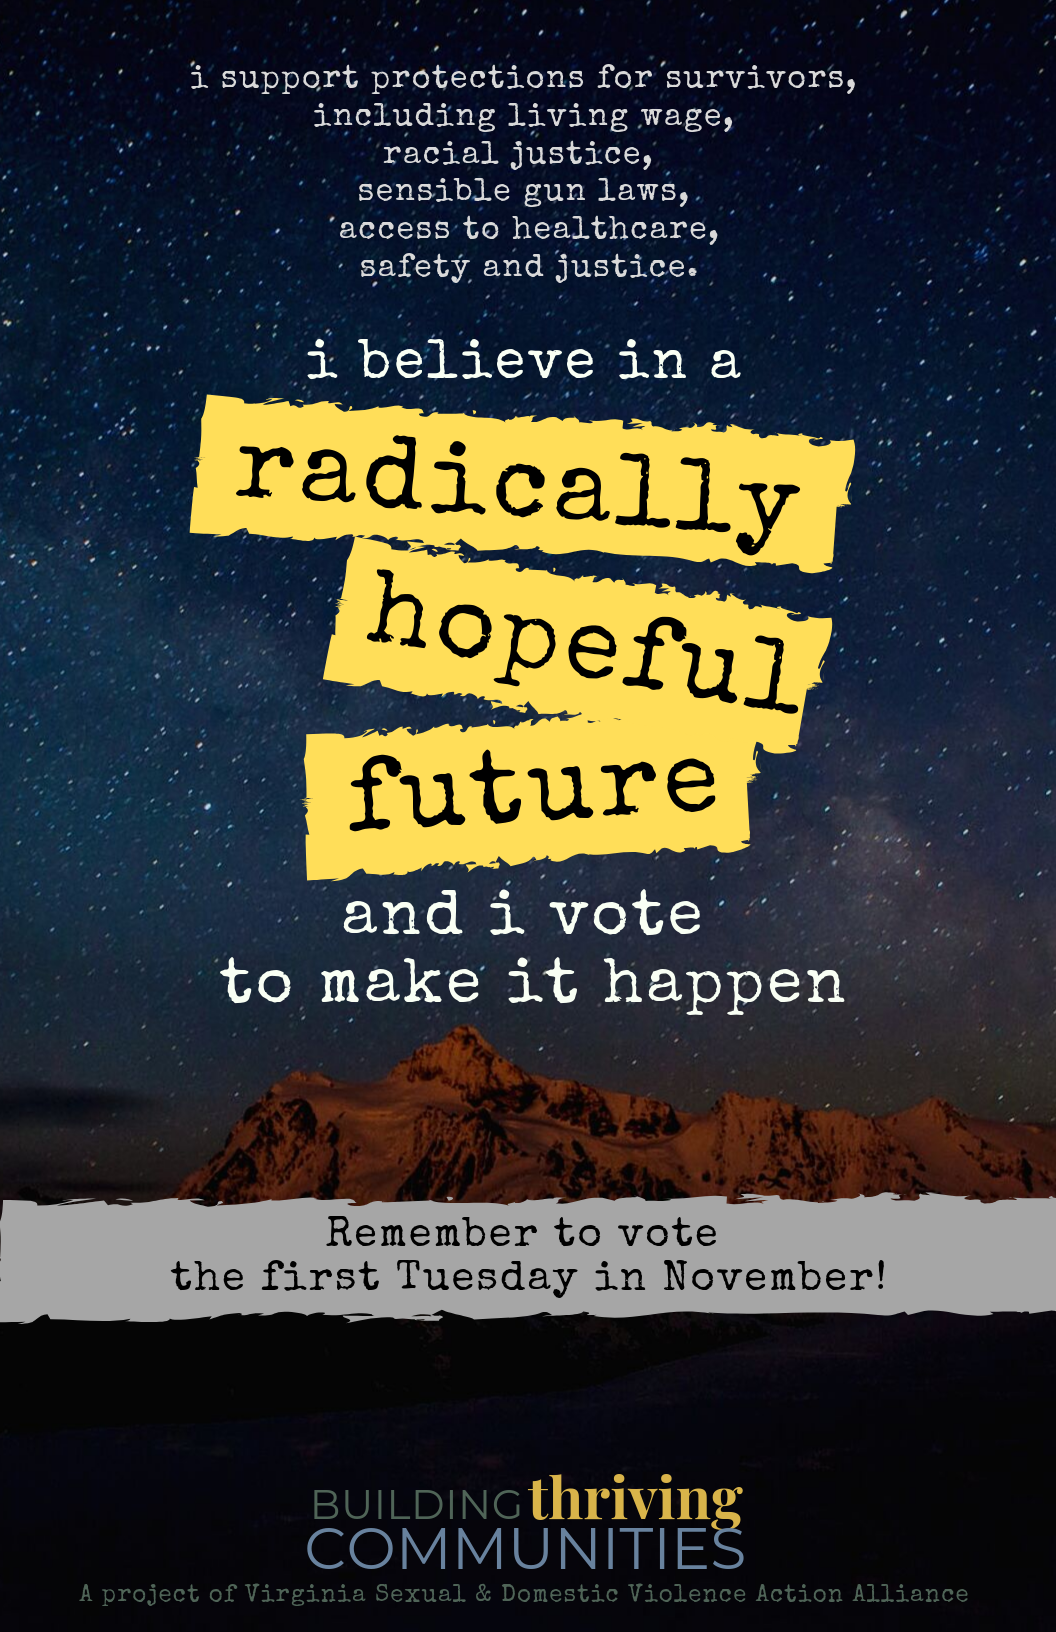 "The background is a starry, night sky above mountains. Foreground text says, ""I support protections for survivors, including living wage, racial justice, sensible gun laws, access to healthcare, safety and justice. I believe in a radically hopeful future and I vote to make it happen. Remember to vote the first Tuesday in November!"" Stylized text as logo for Building Thriving Communities: a project of the Virginia Sexual and Domestic Violence Action Alliance."